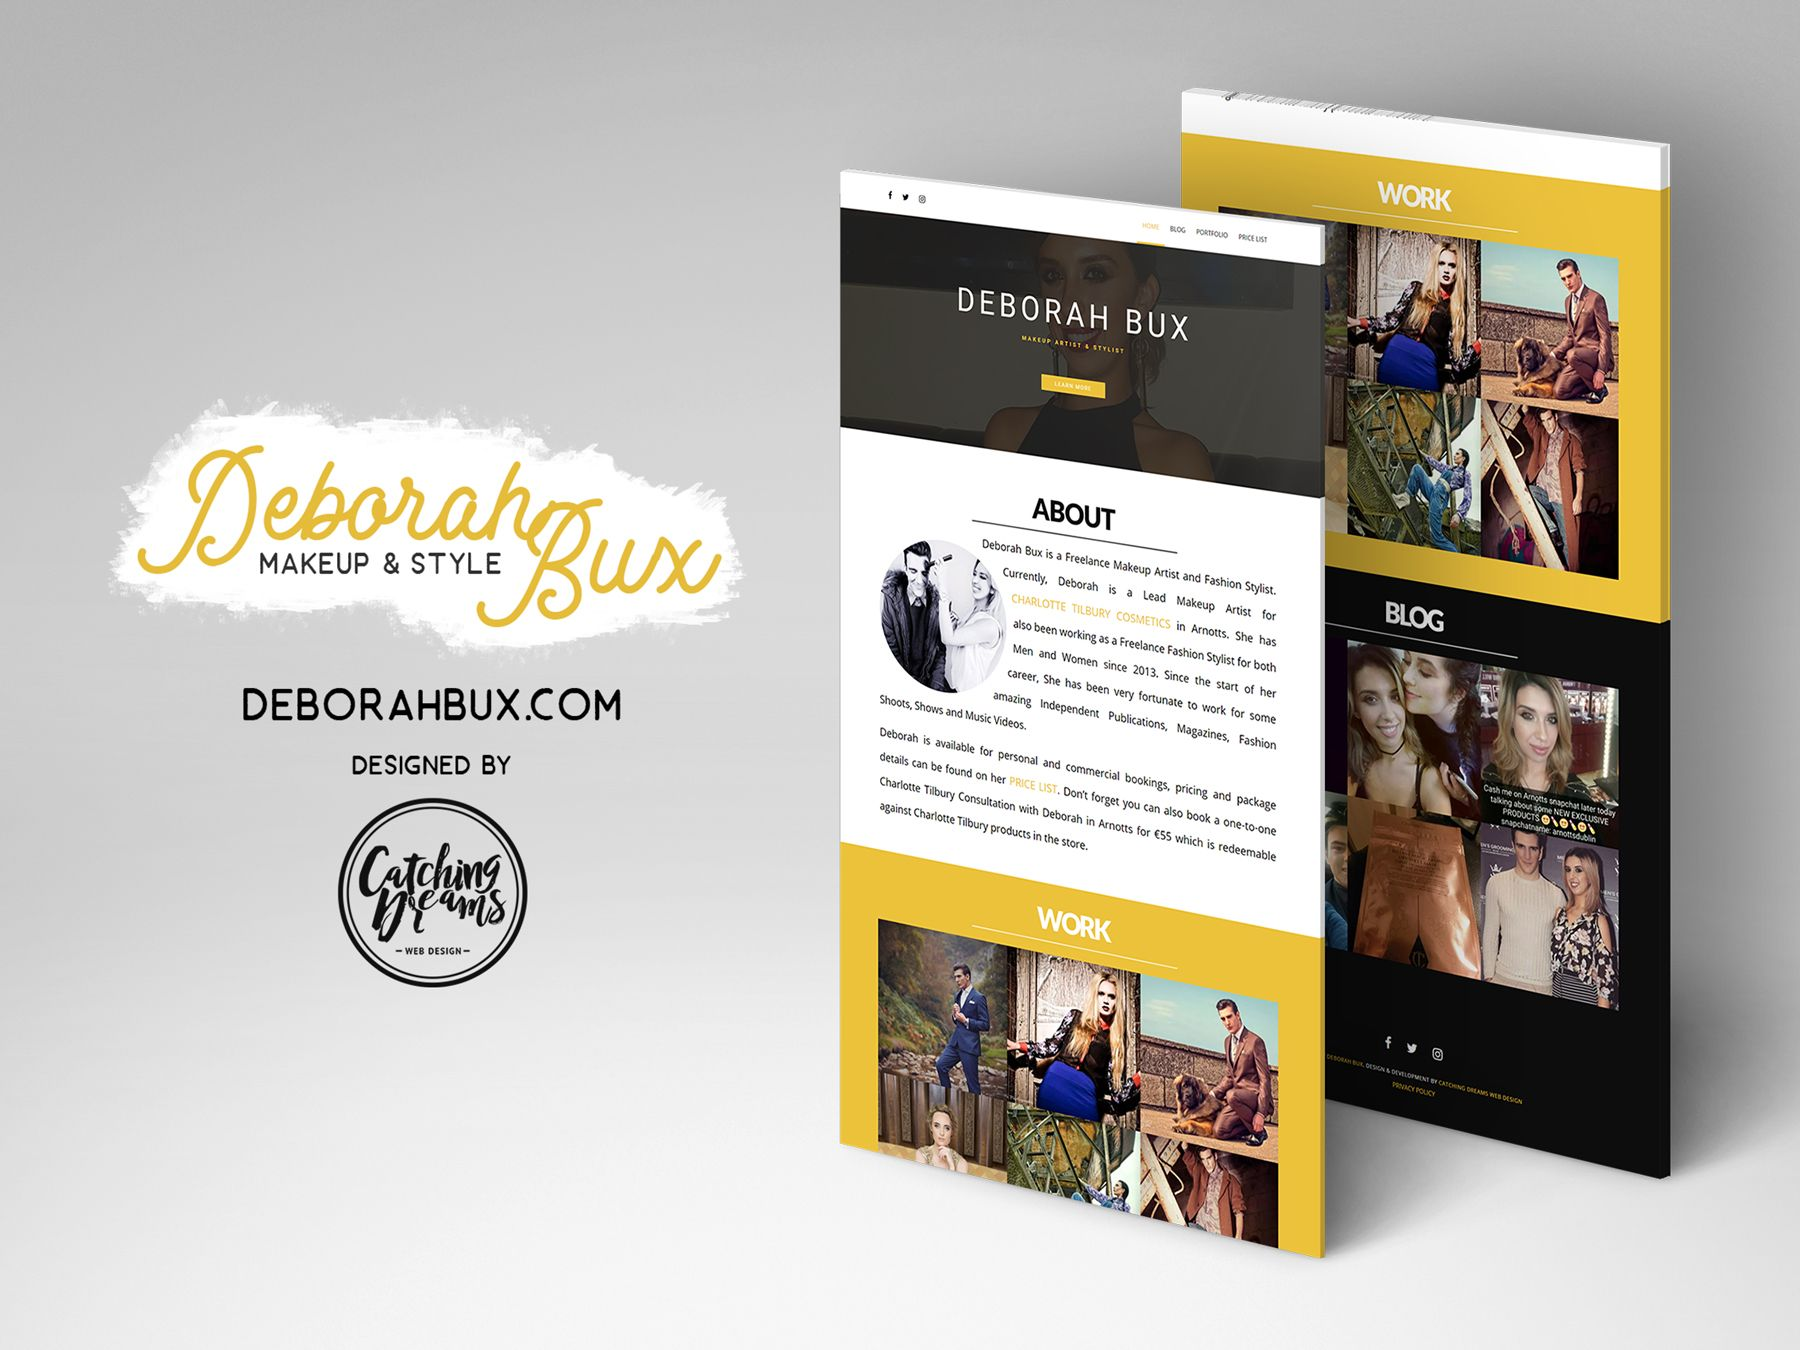 Deborah Bux Blog Website Design Web Design Website Design